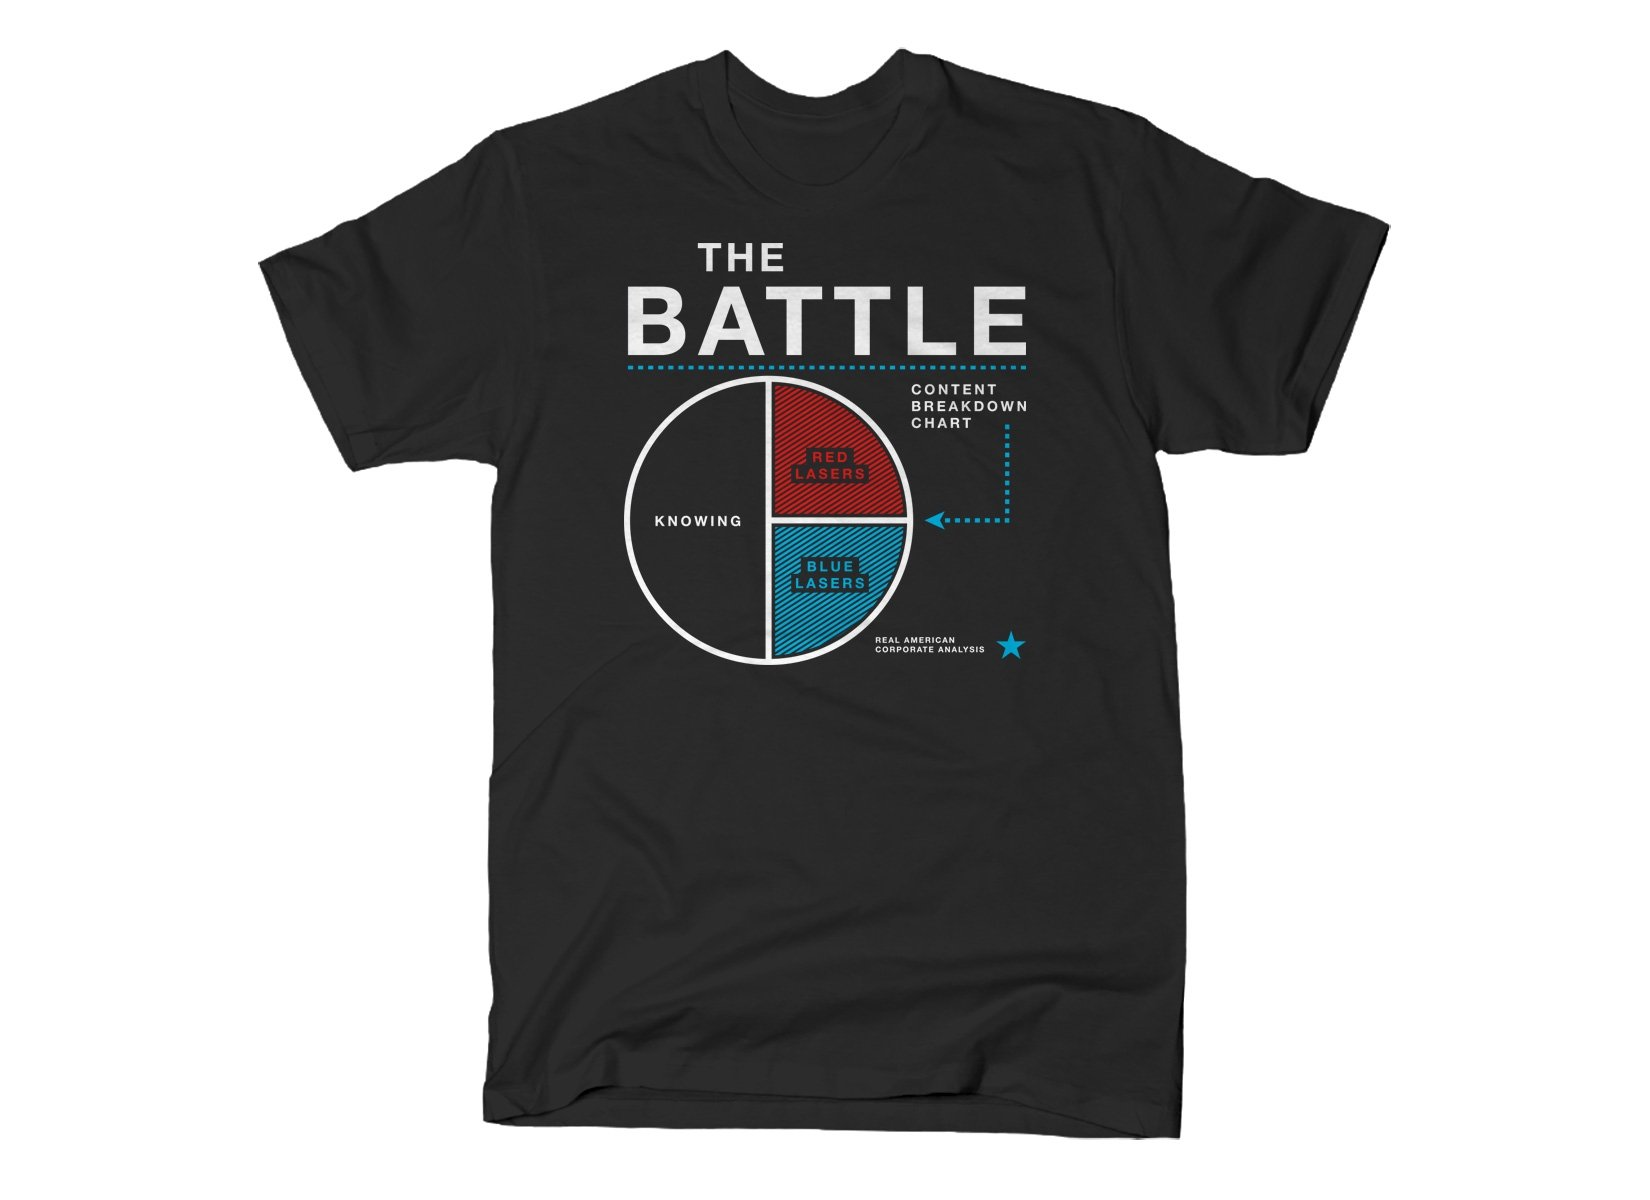 The Battle on Mens T-Shirt